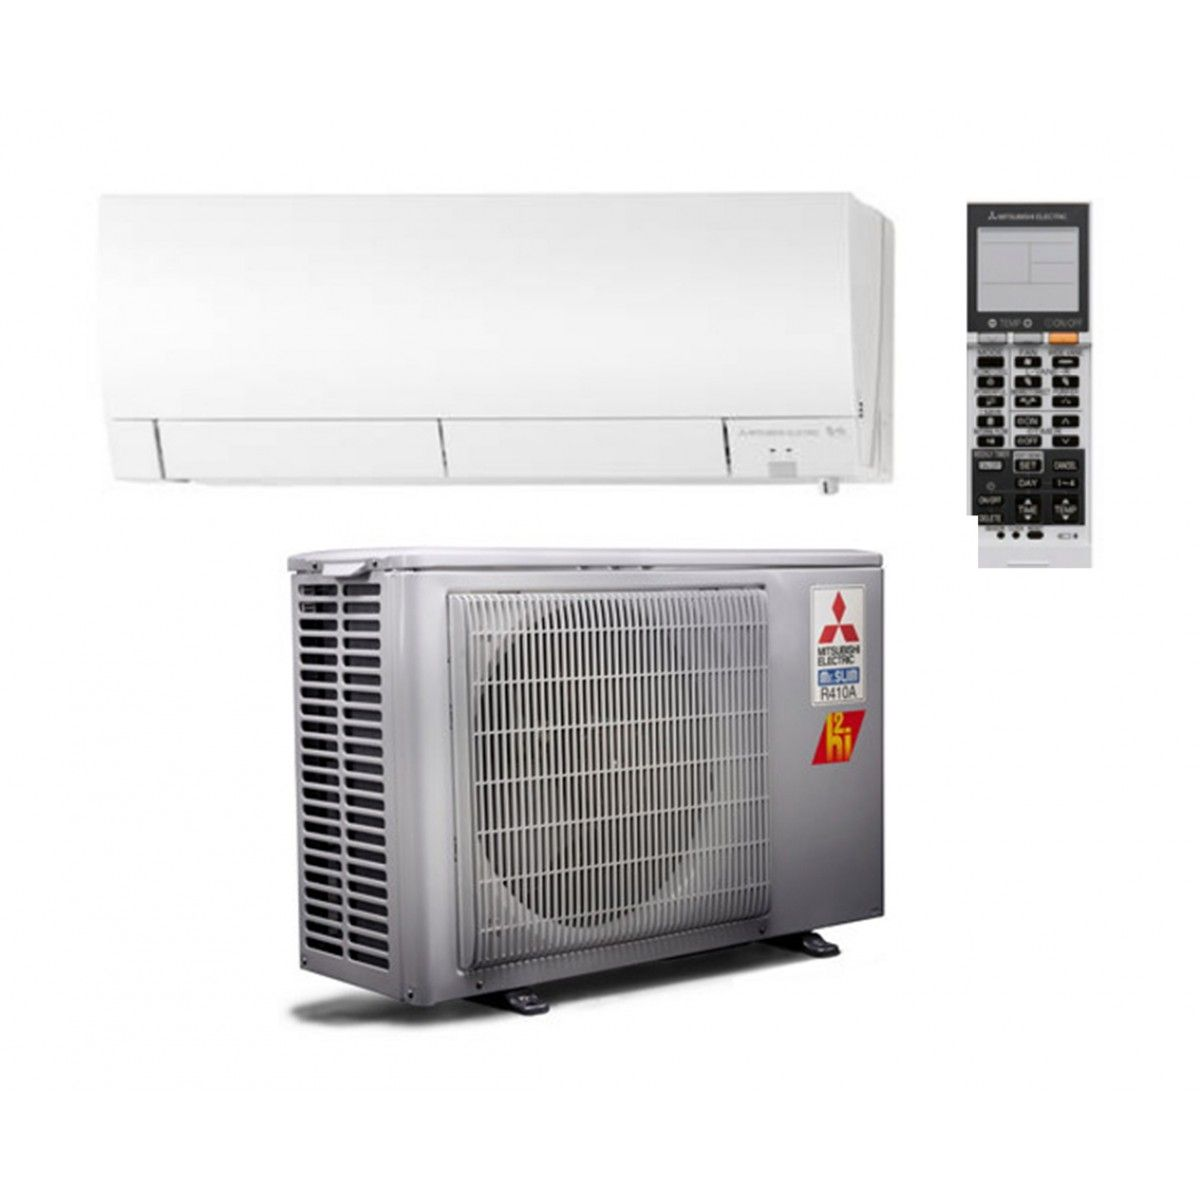 Manly India Mitsubishi Btu Heat Pump Hyper Heat Seer System How Much Does A Mitsubishi Ductless Air Conditioner Ductless Air Conditioner Installation Cost Canada Ductless Air Conditioner Cost houzz-03 Ductless Air Conditioner Installation Cost